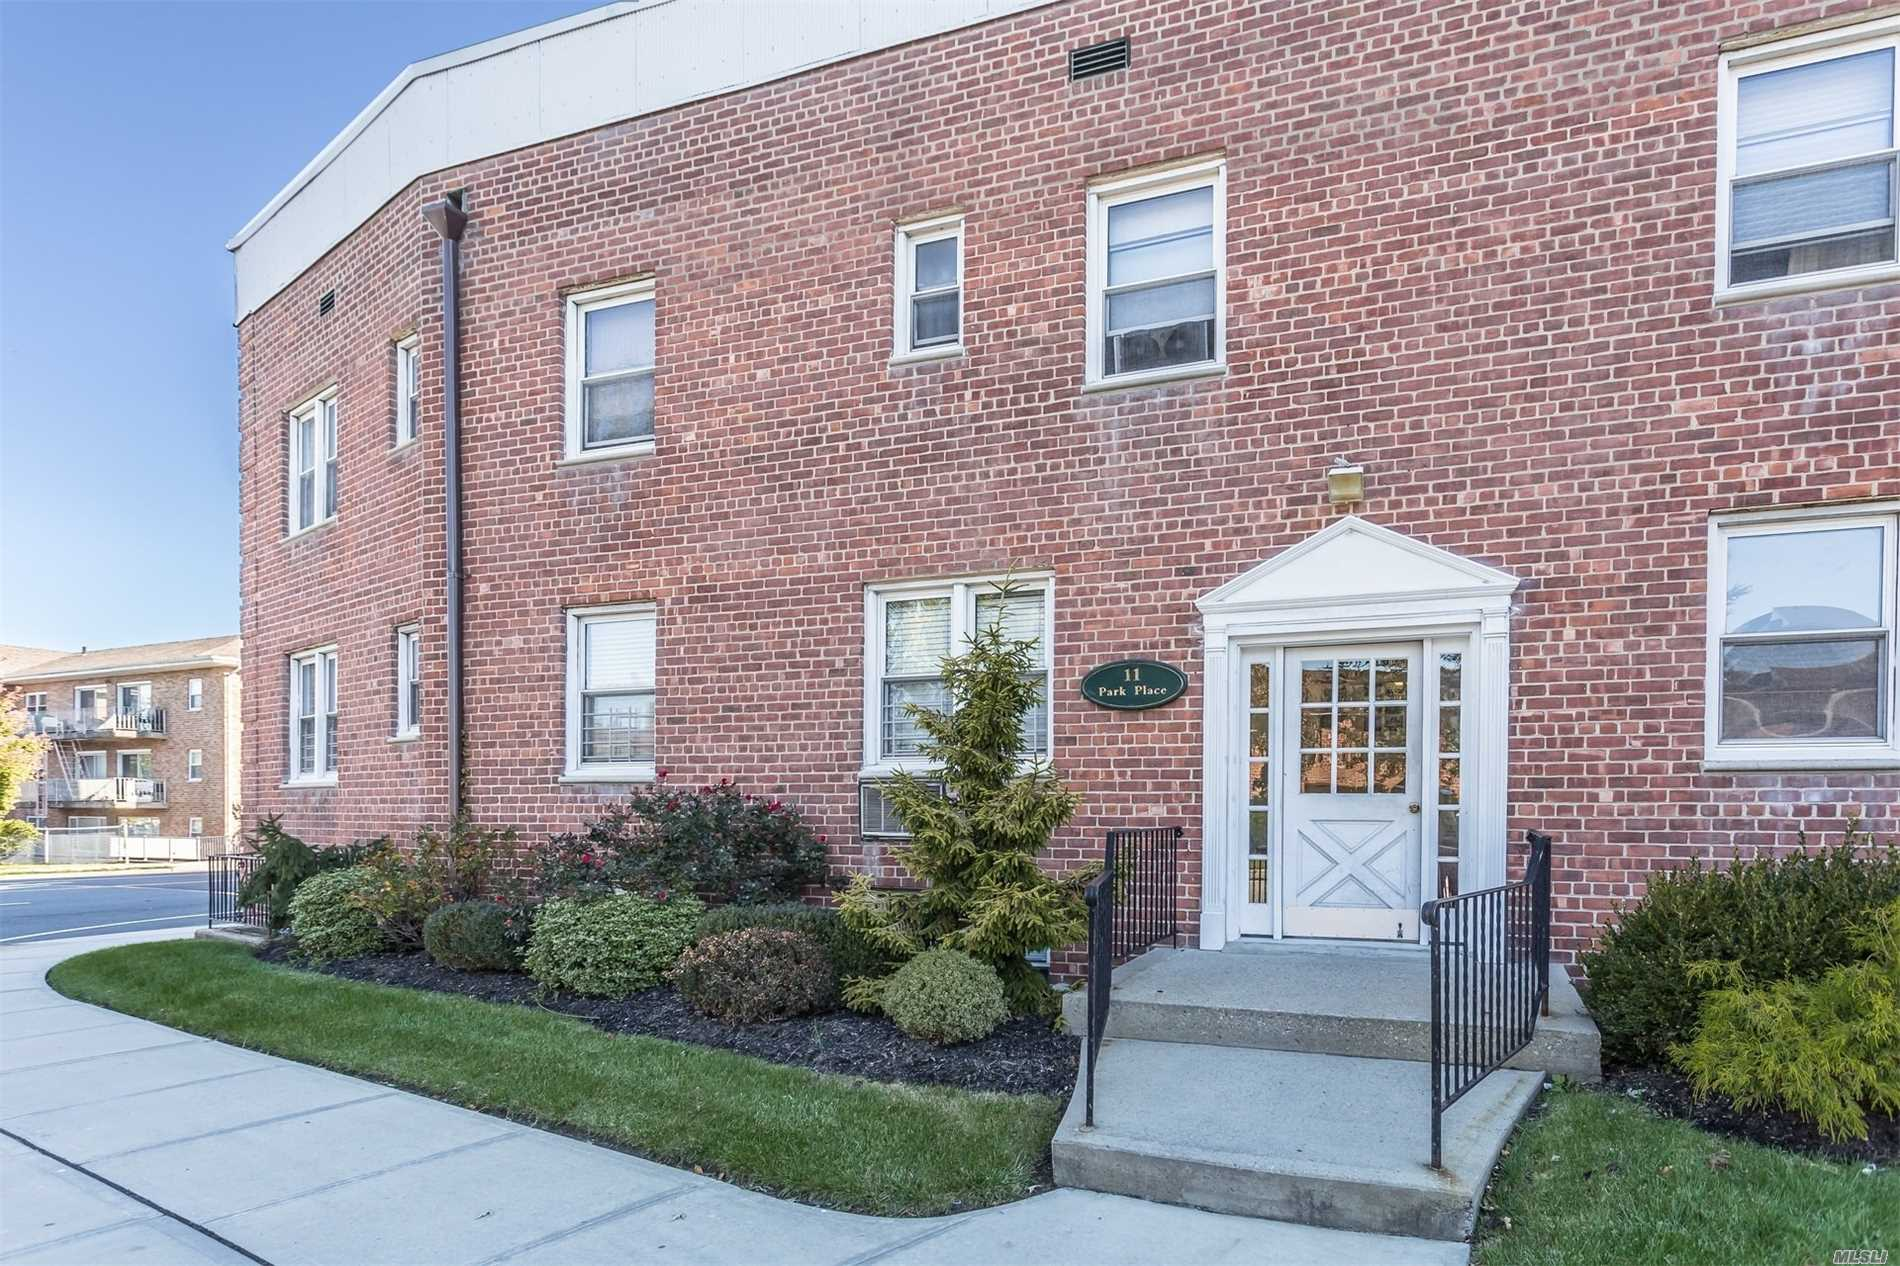 Rockville Centre. Newly Renovated 1 Bedroom, Perfectly Located .5 Miles From The Train Station. Stainless Steel Appliances. Bedroom Large Enough For A King Size Bed. It's A Must See.